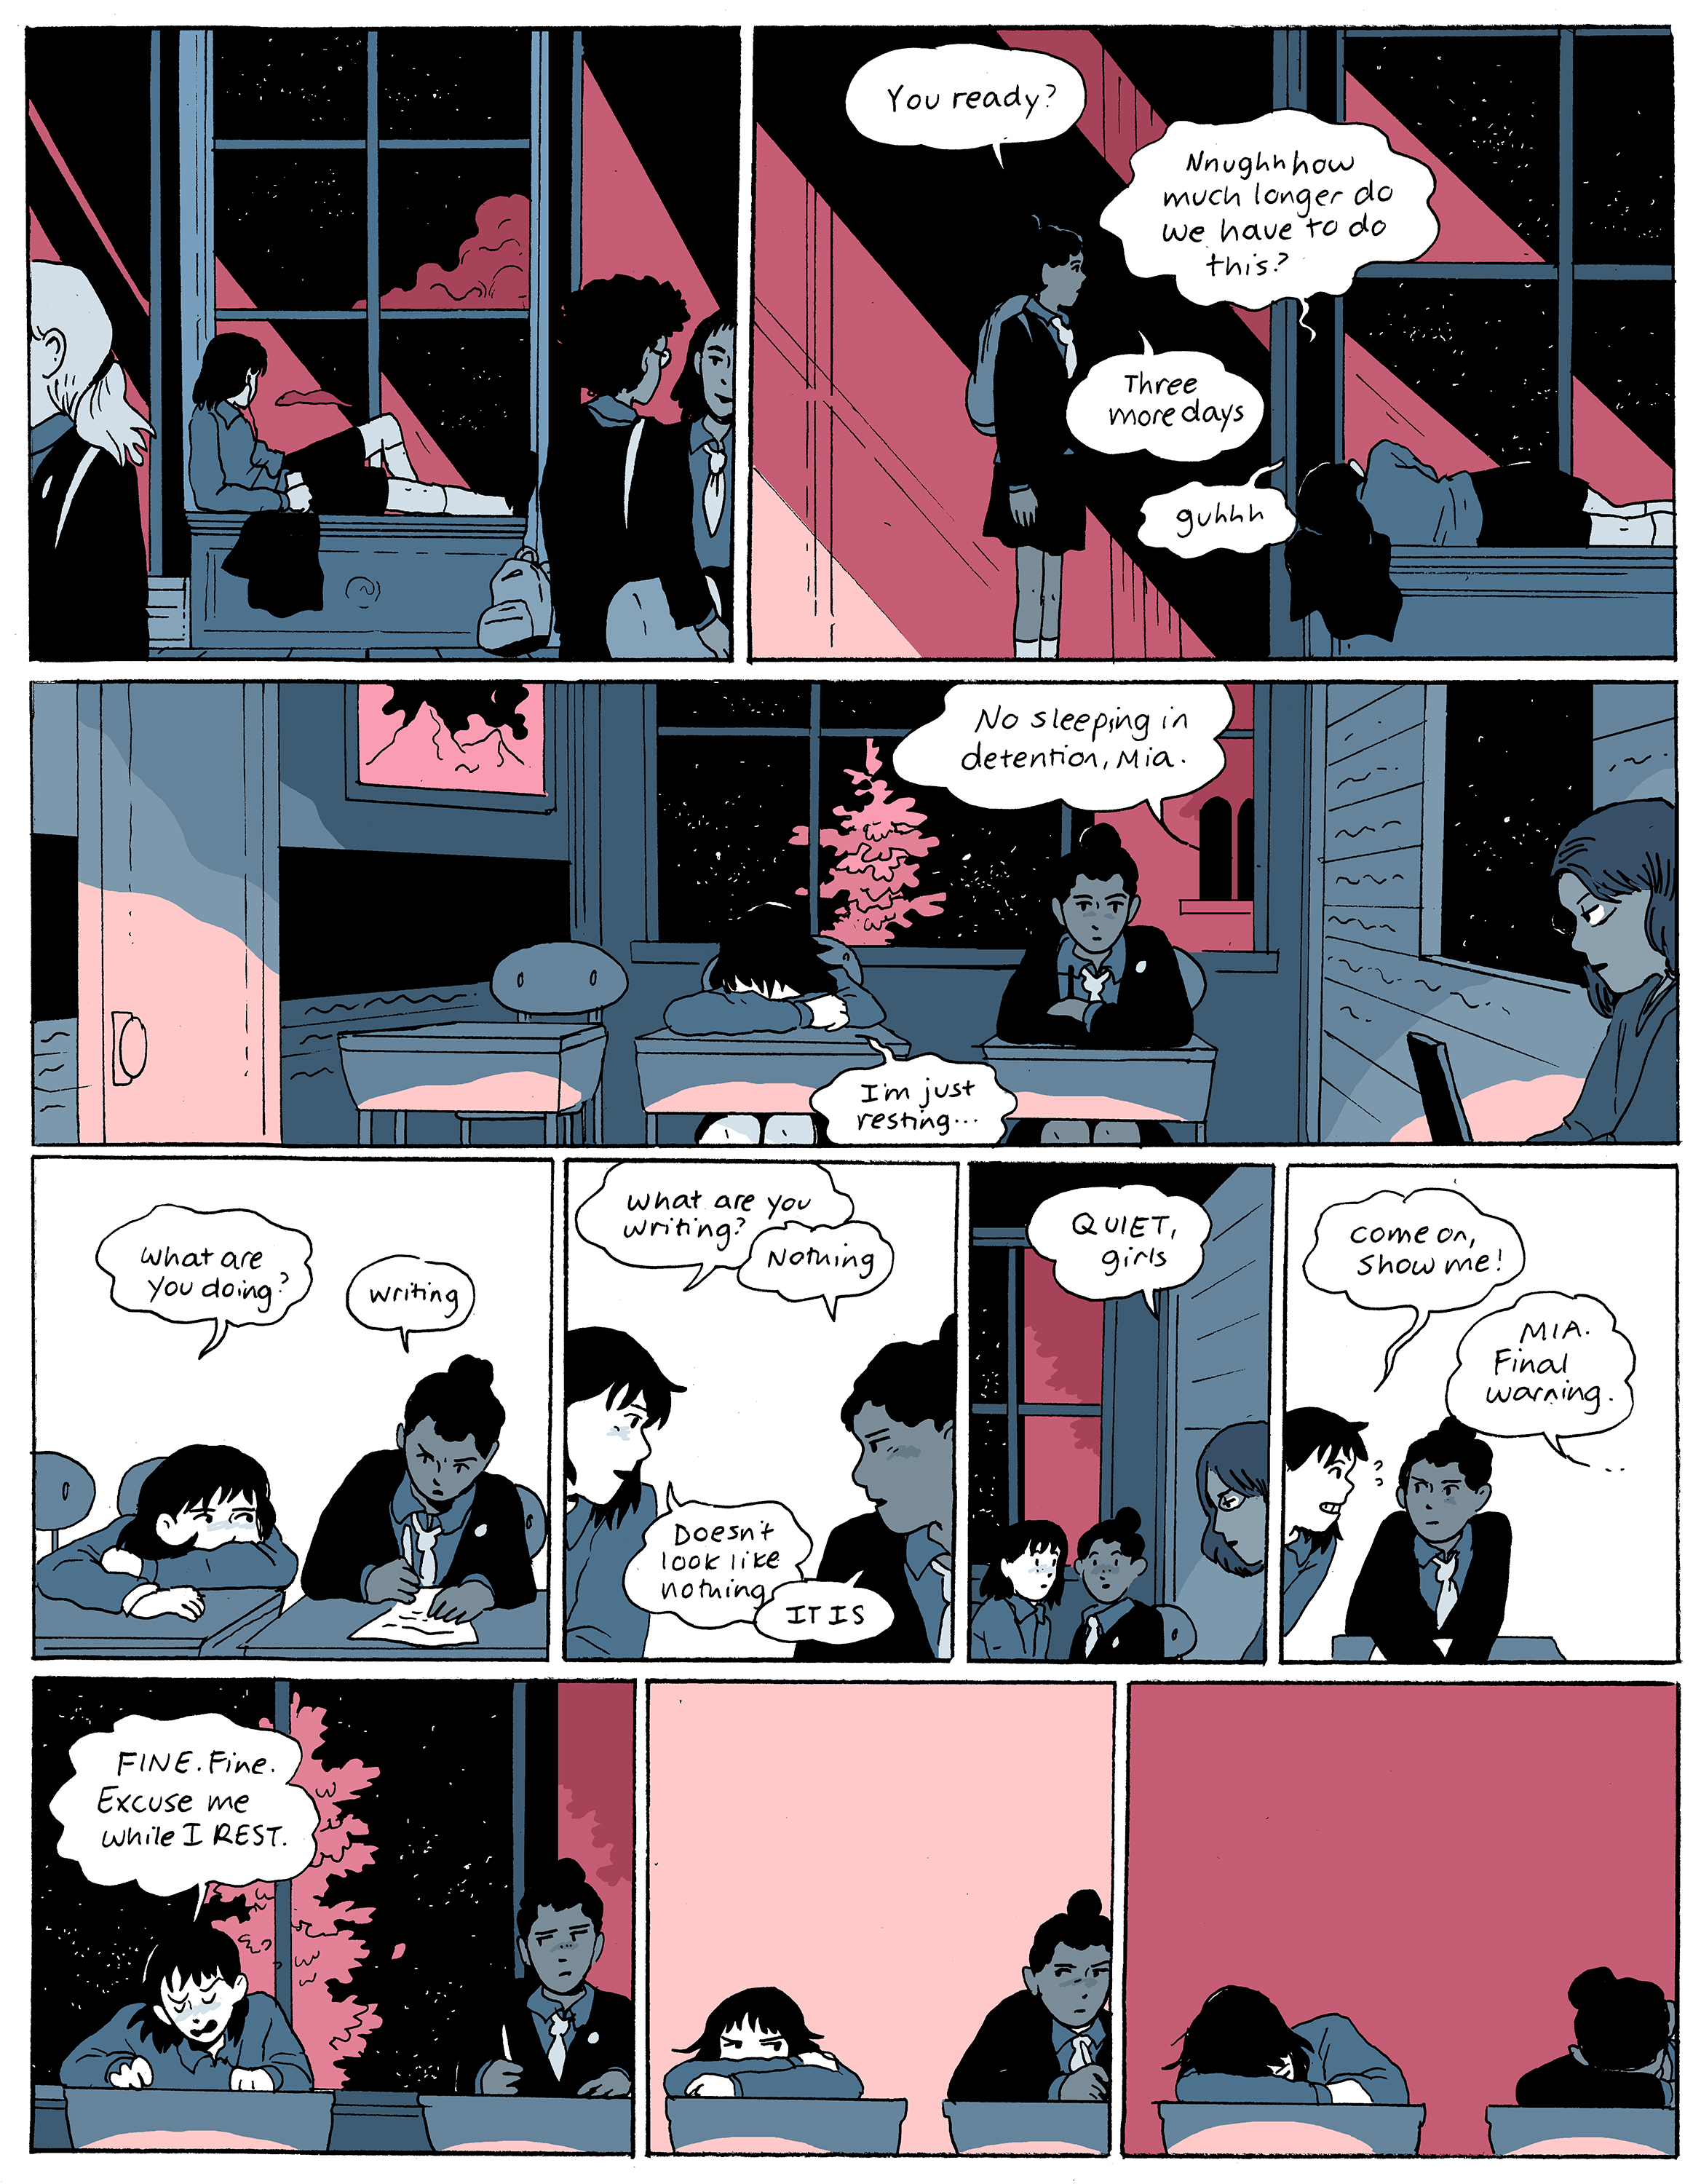 chapter03_page02.jpg